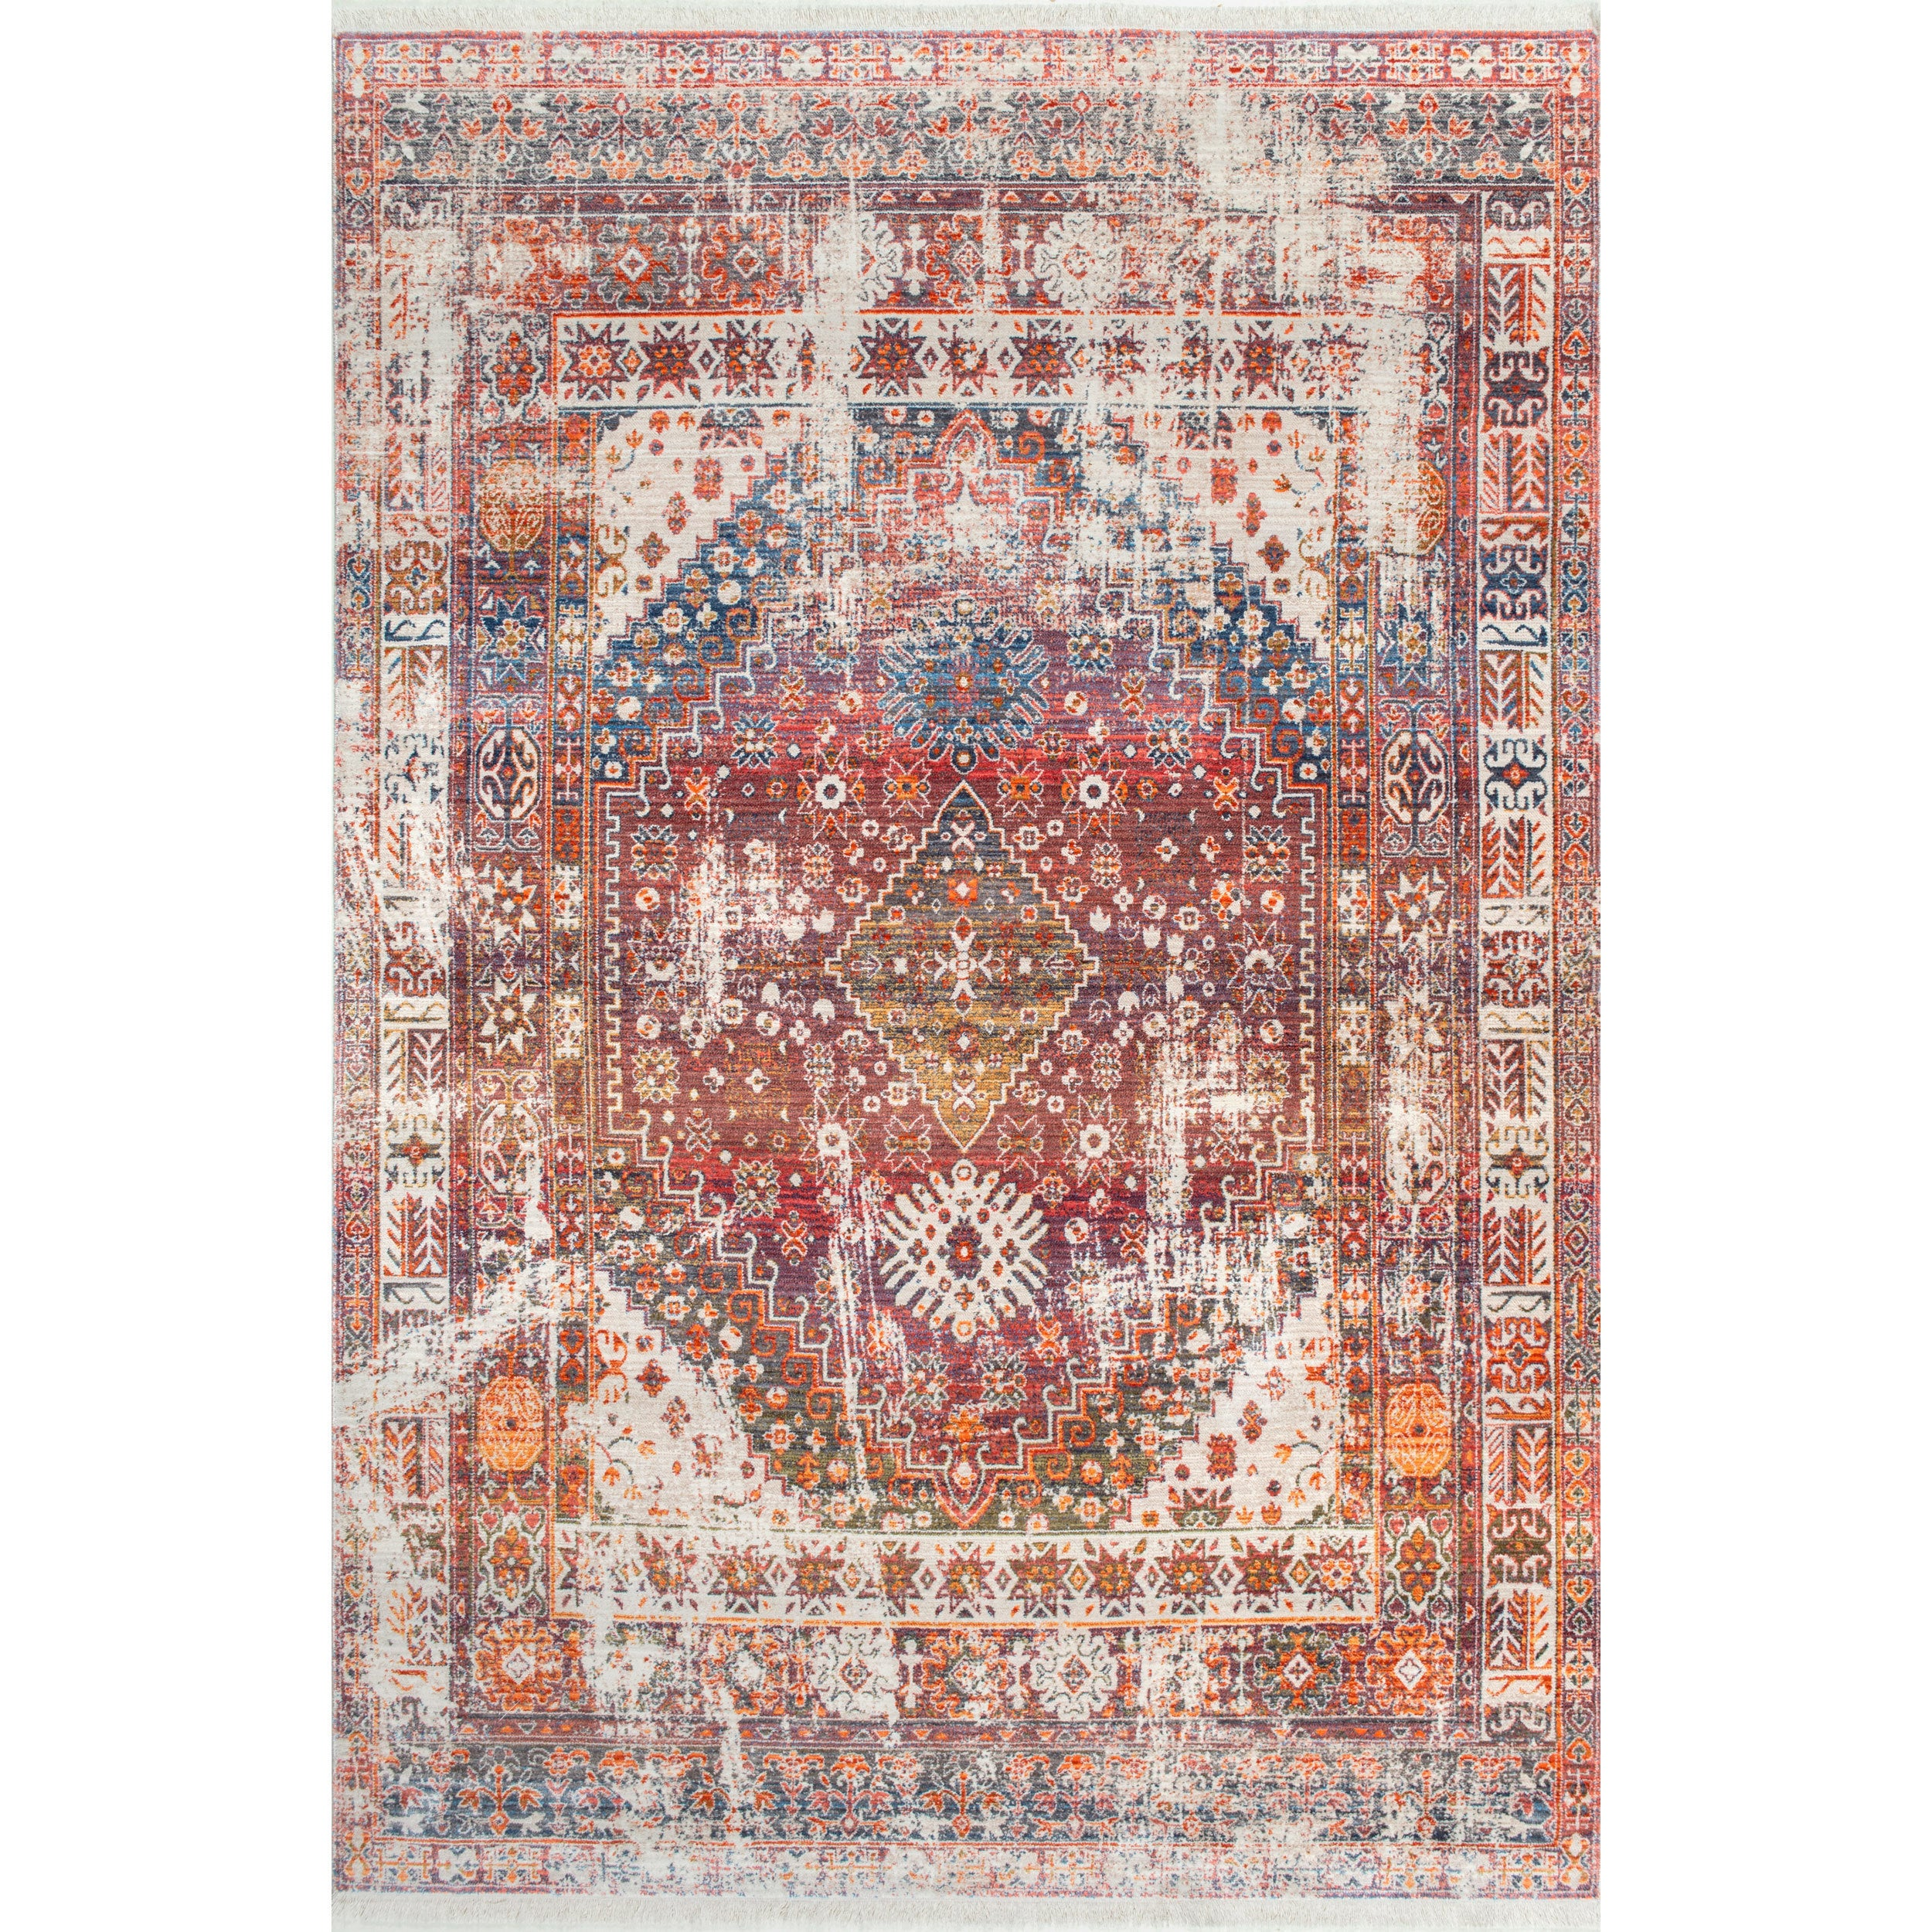 Nuloom Vintage Faded Olden Tribal Medallion Area Rug Ebay